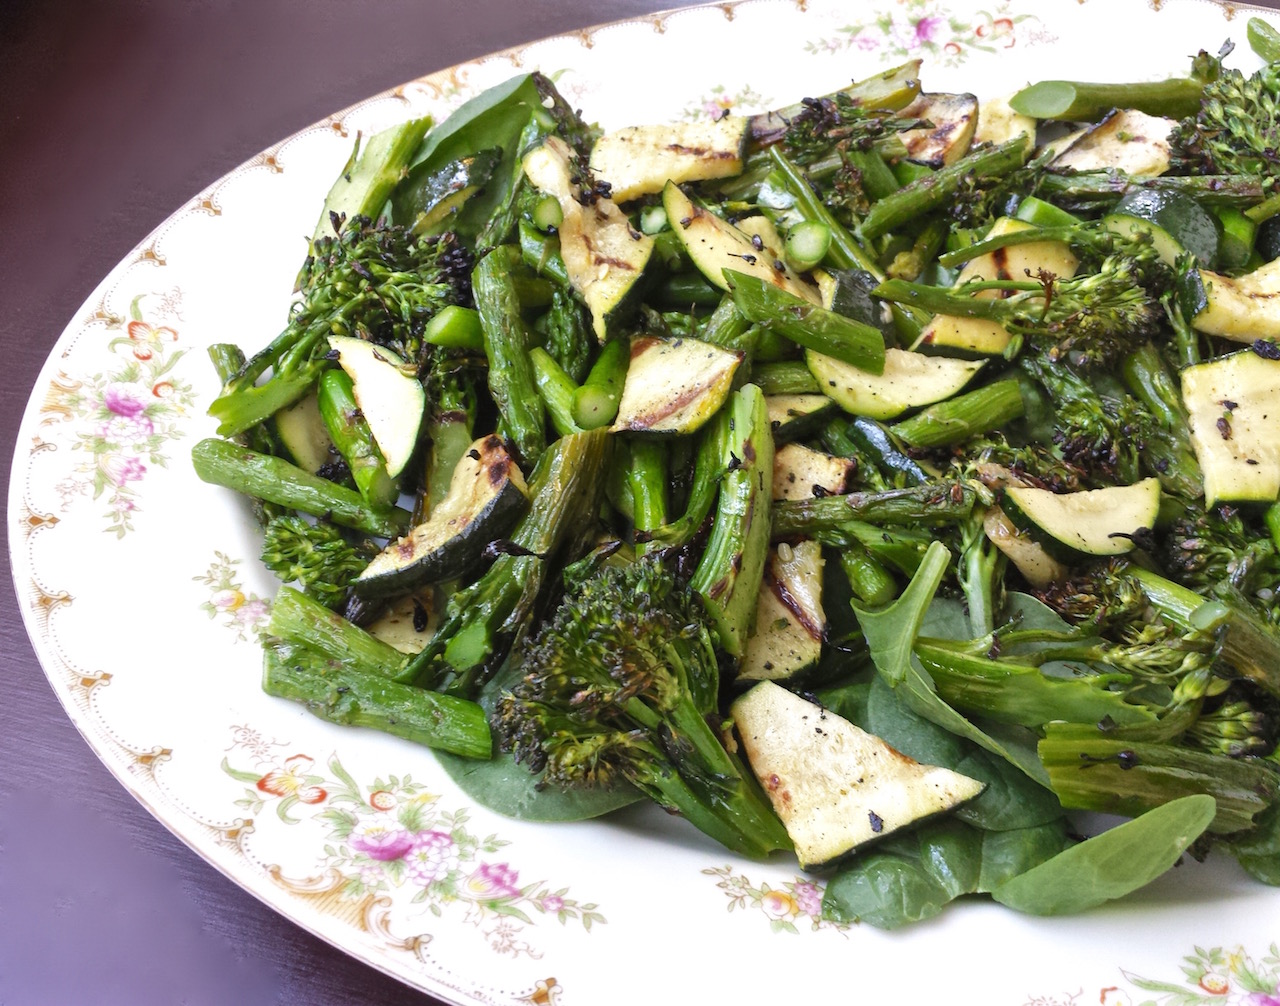 Grilled Green Vegetable Salad